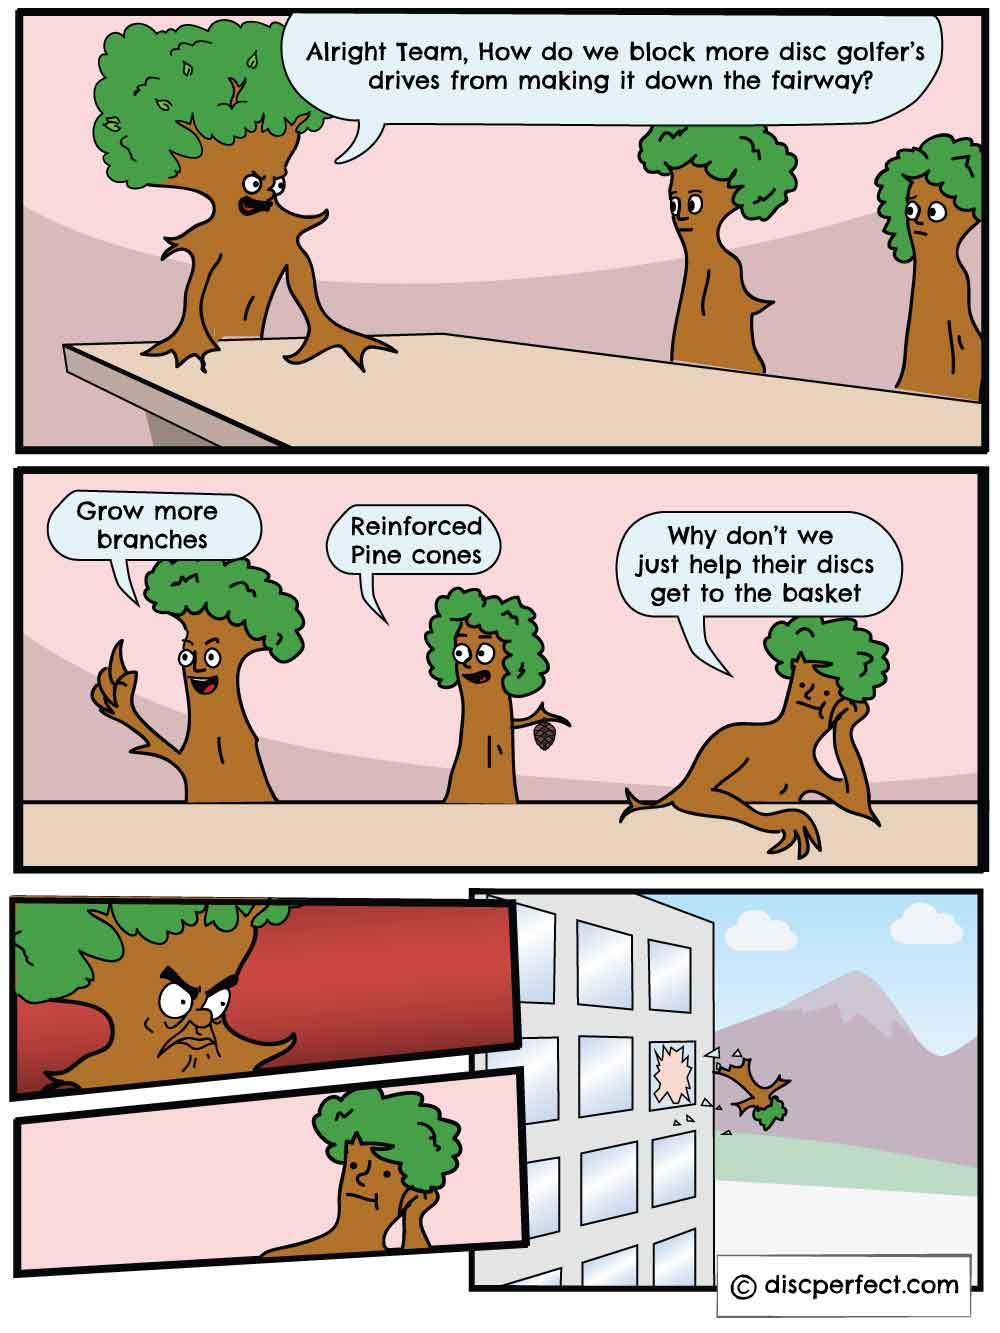 Disc Golf Boardroom meme on what happens when trees meet to talk about disc golfers